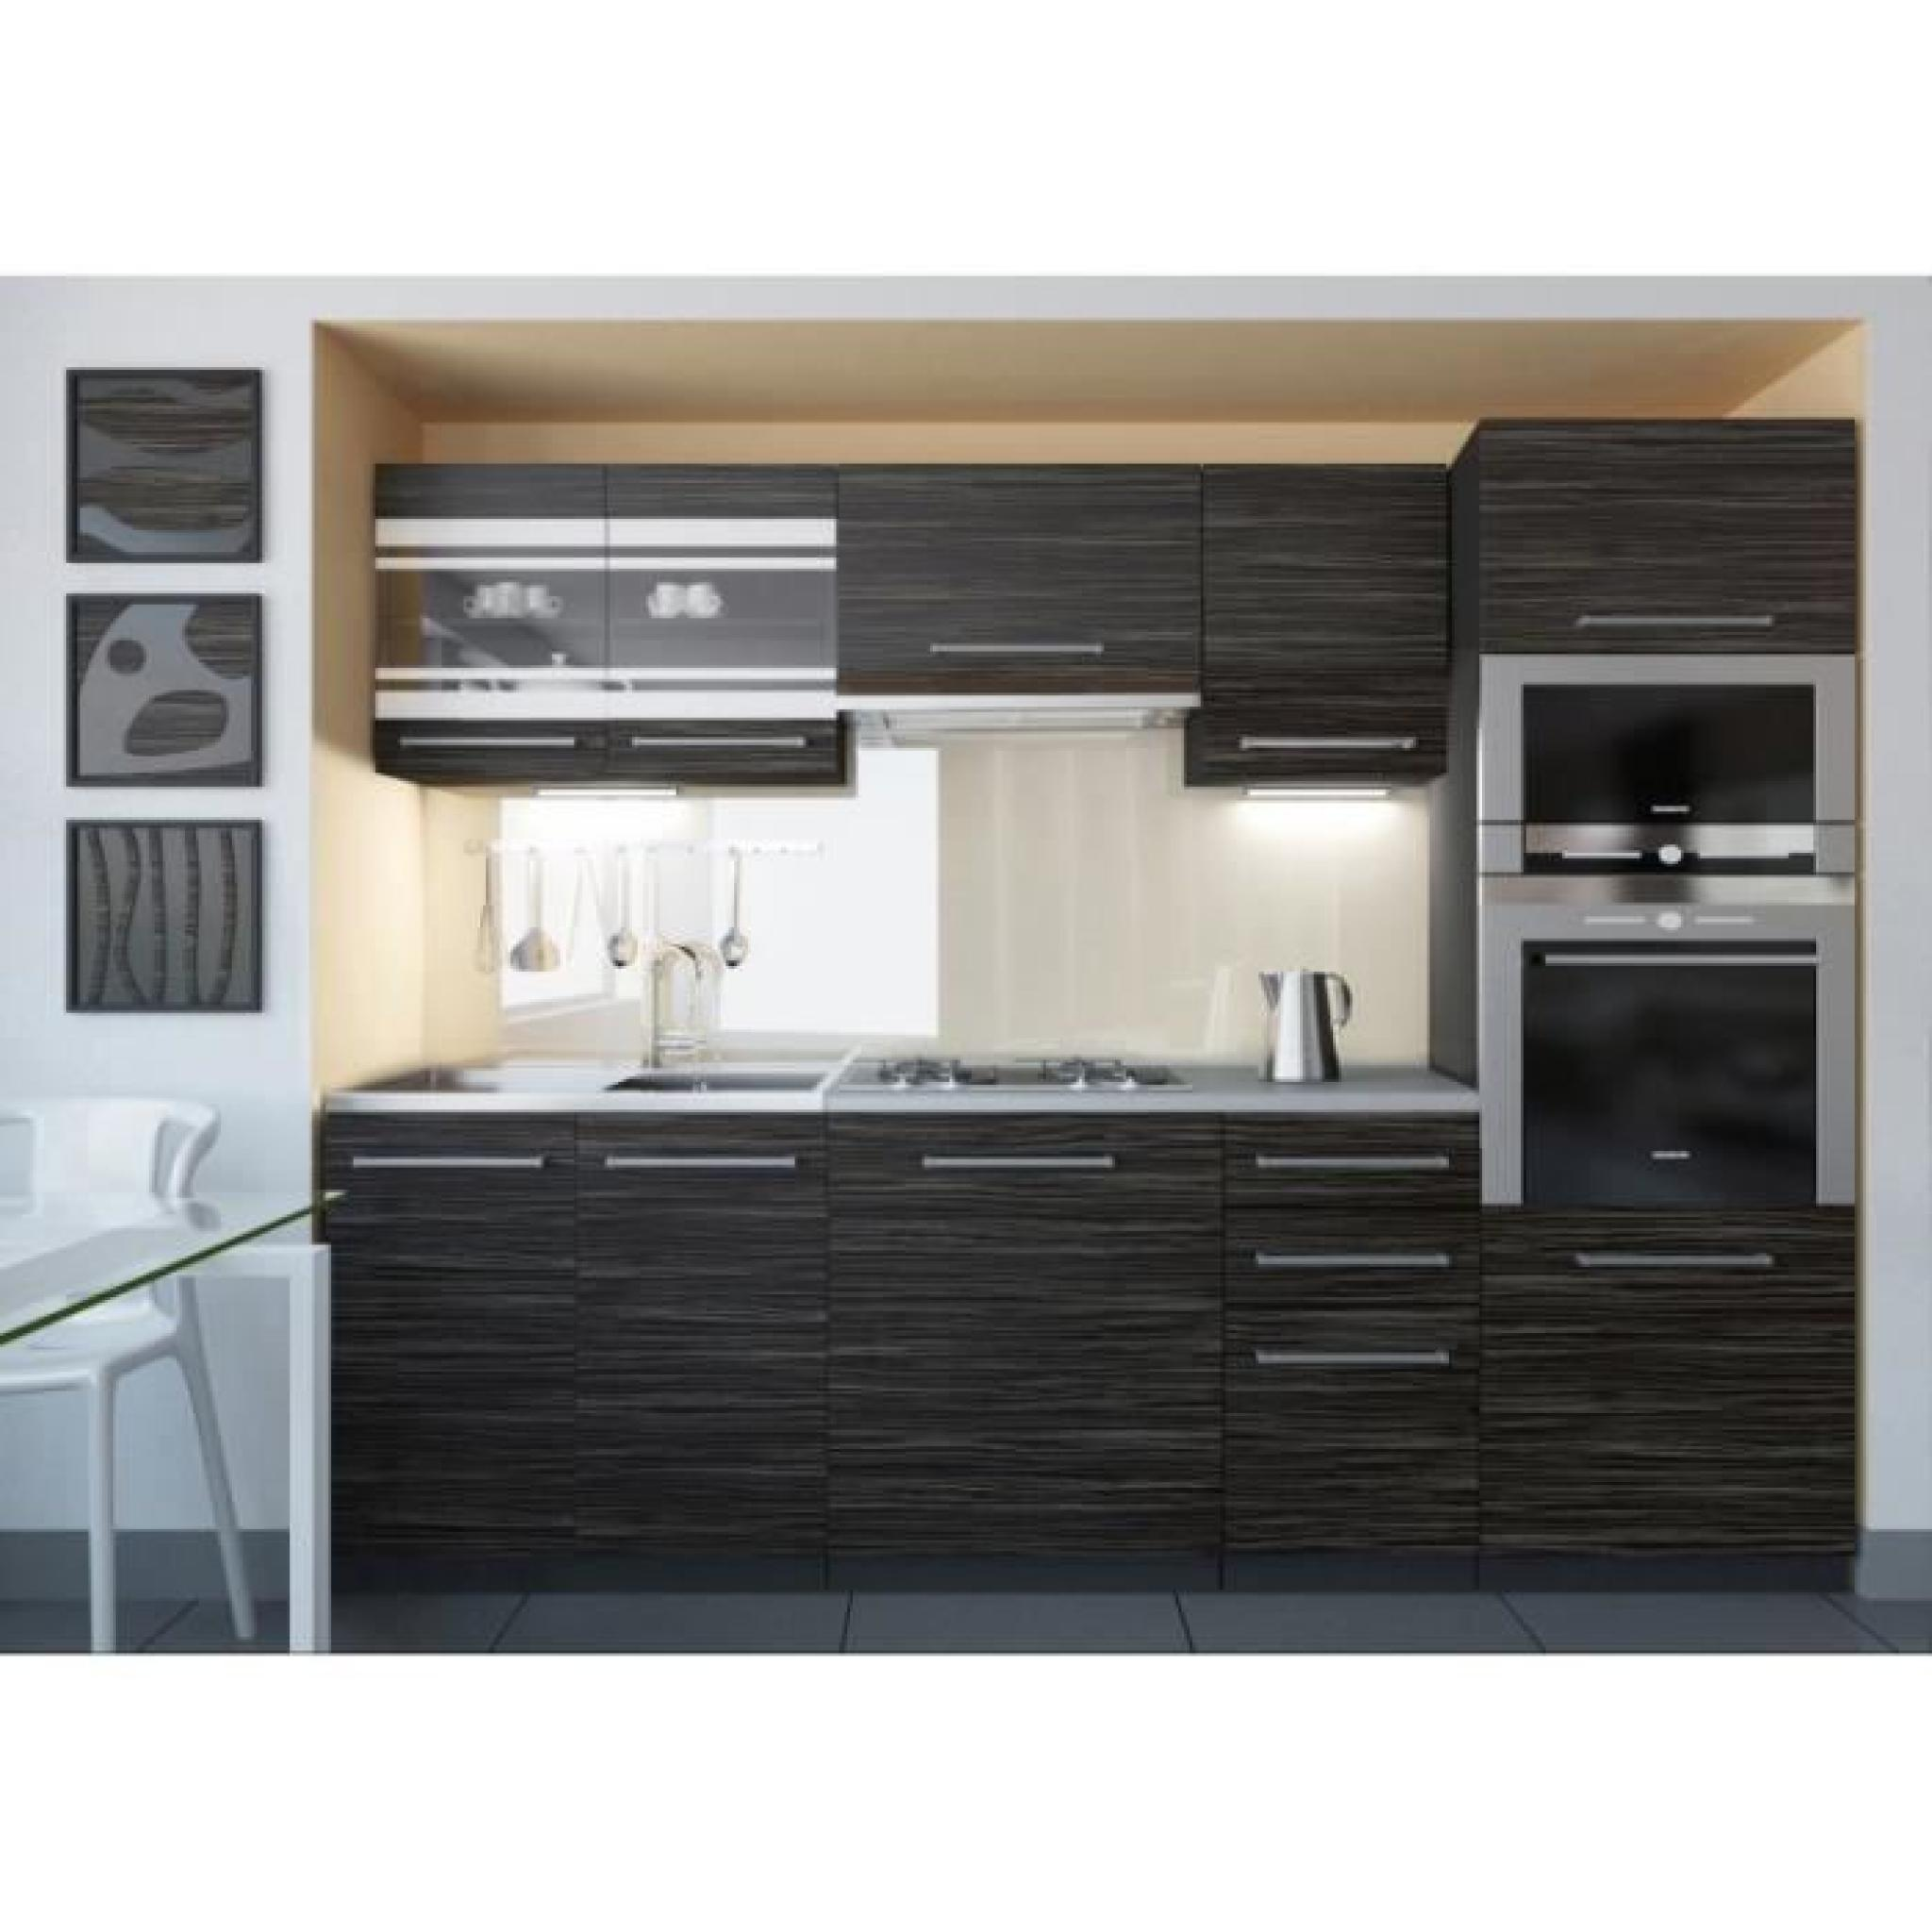 justhome torino 2 led cuisine quip e compl te 240 cm mod le de poign e 2 achat vente cuisine. Black Bedroom Furniture Sets. Home Design Ideas